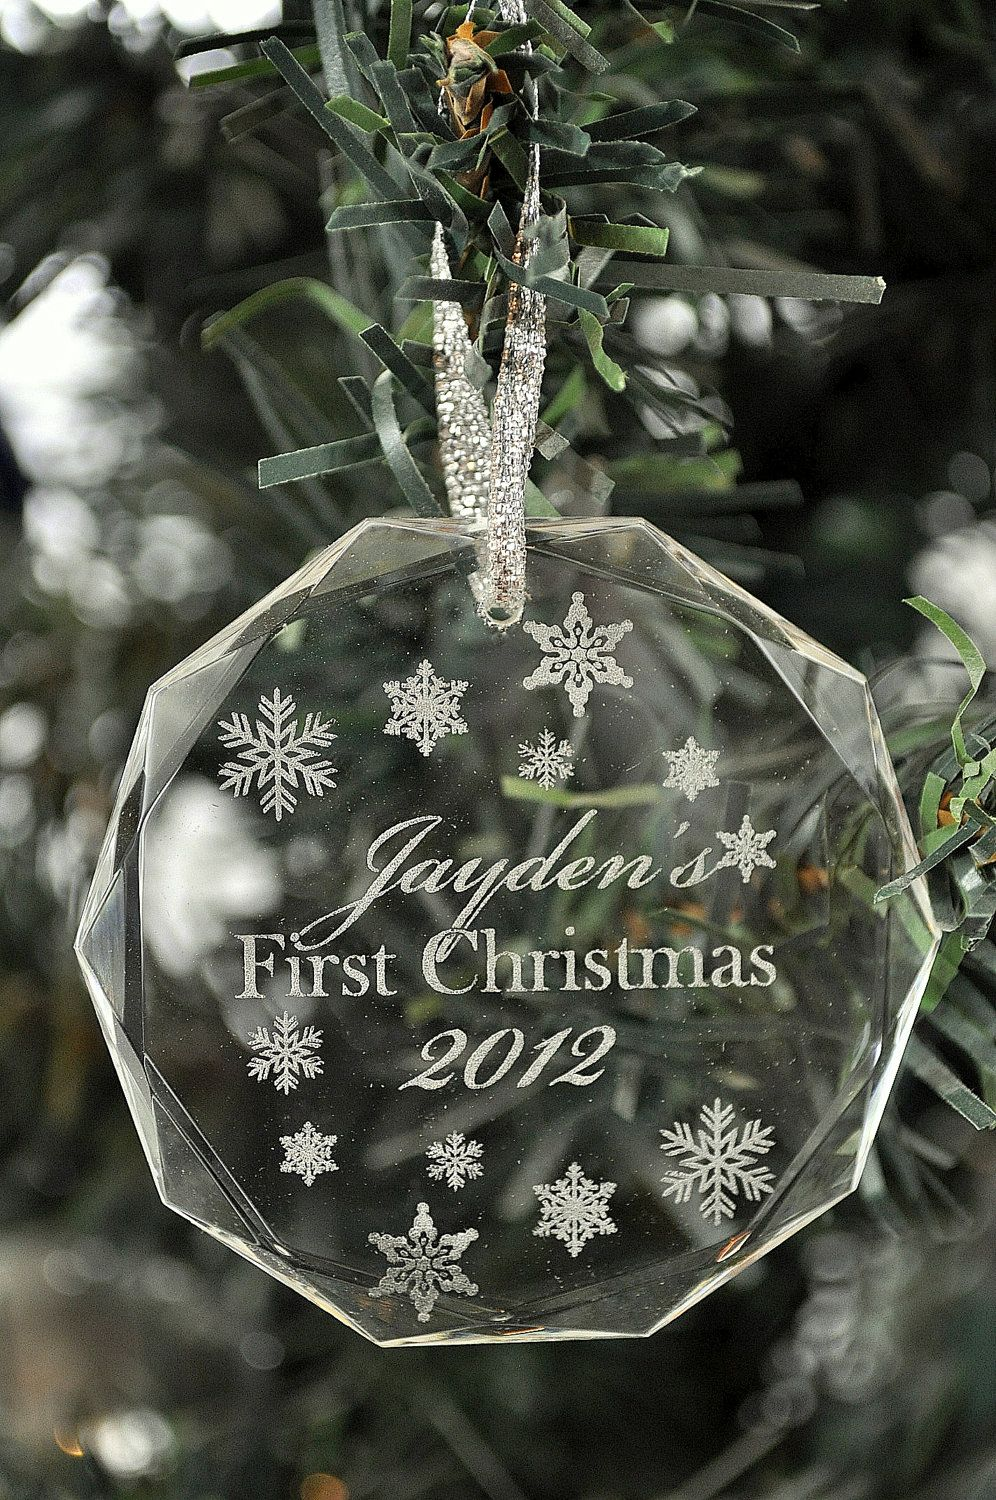 Personalized Laser Engraved Crystal First Christmas Ornament 3 Laser Engraving Christmas Ornaments Personalized Christmas Ornaments